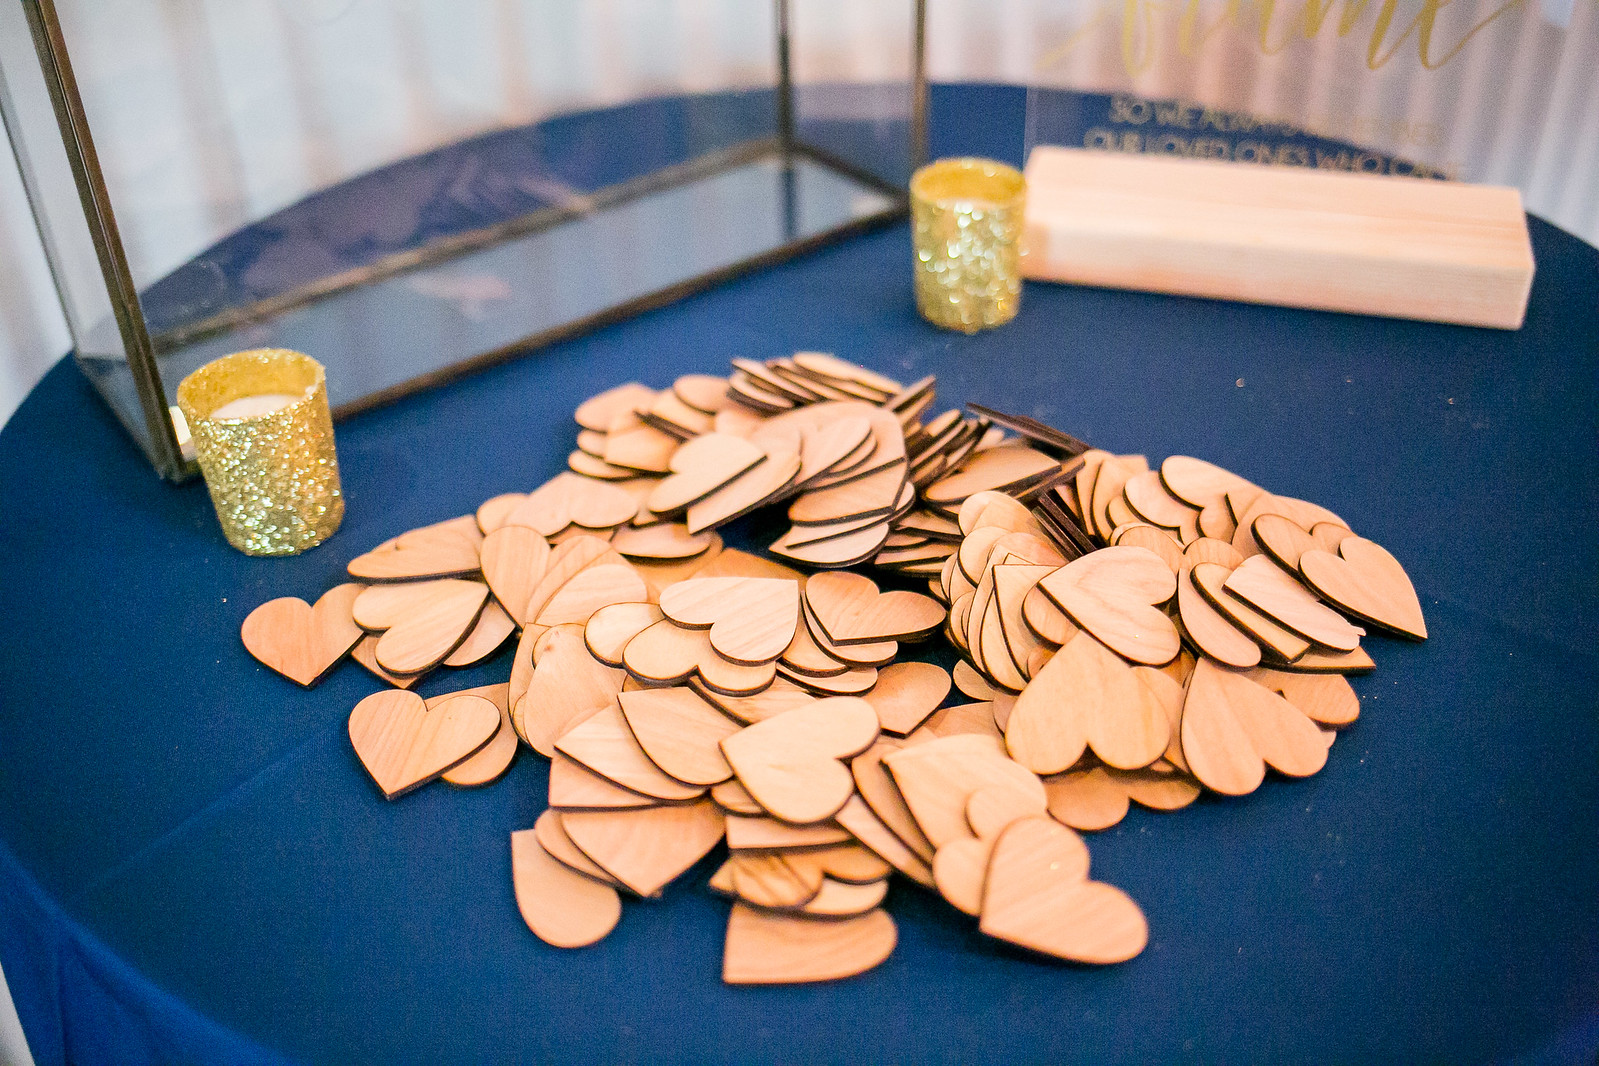 Our top 10 list of wedding trends for 2018 include this amazing twist on guest books at weddings!